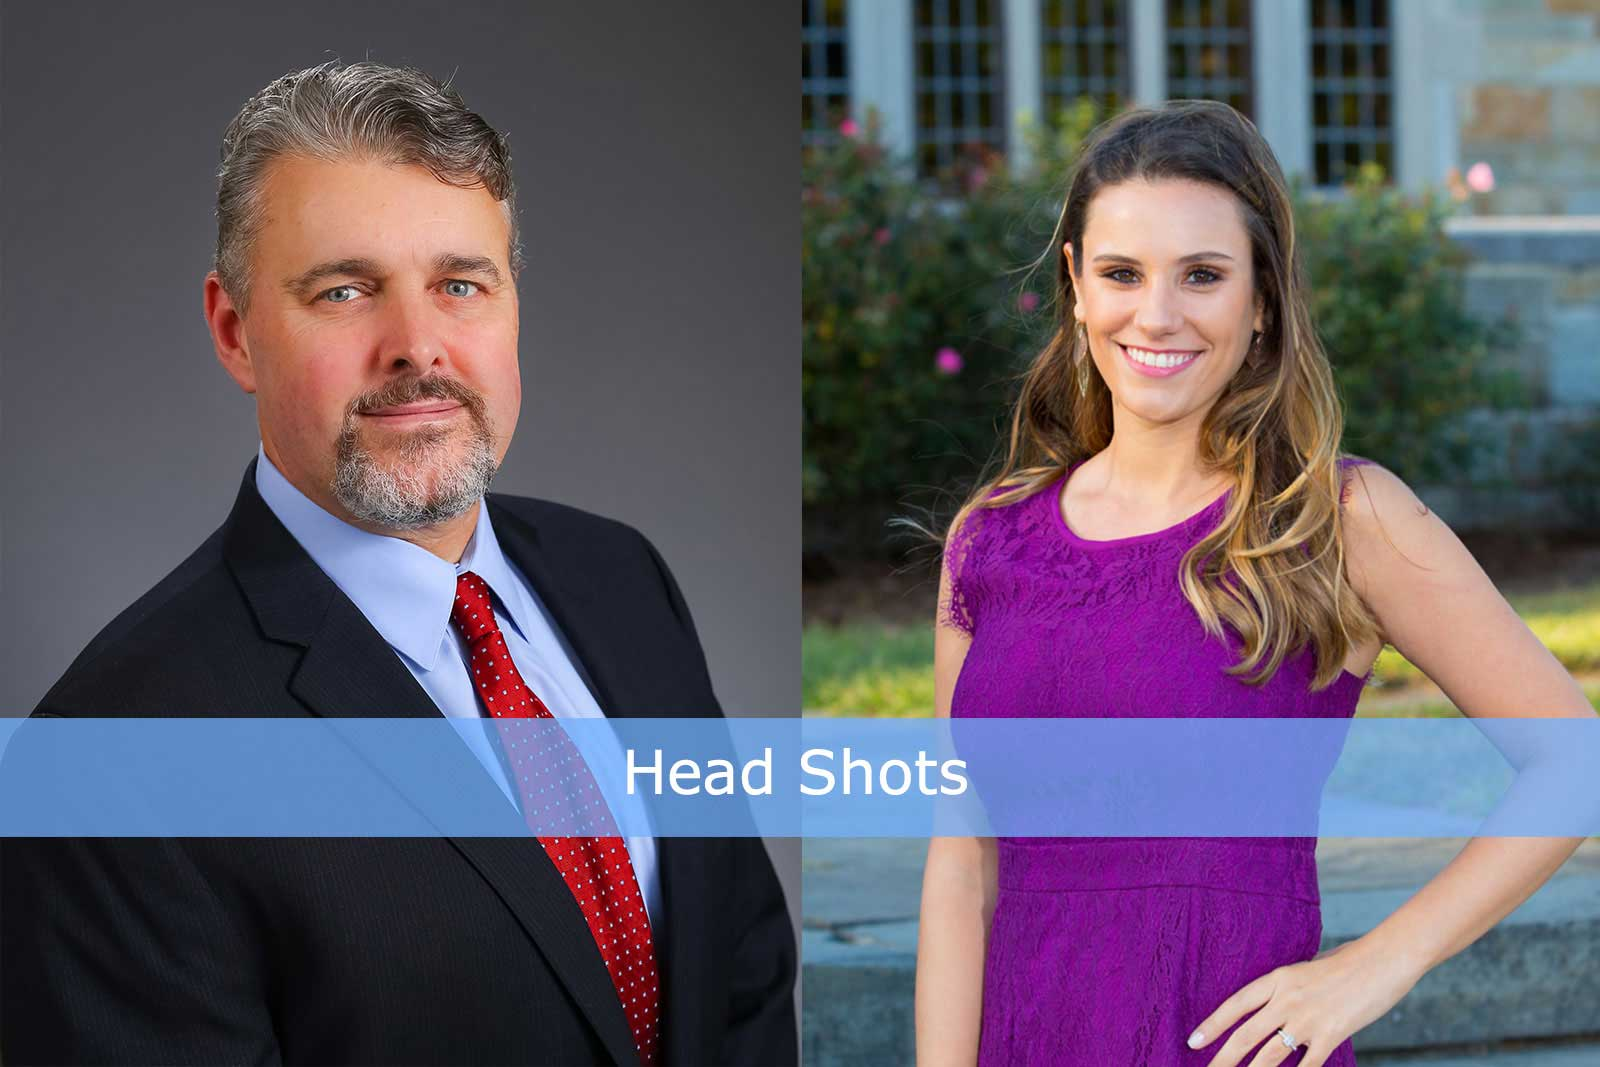 Headshot Photography by CT Photo Group